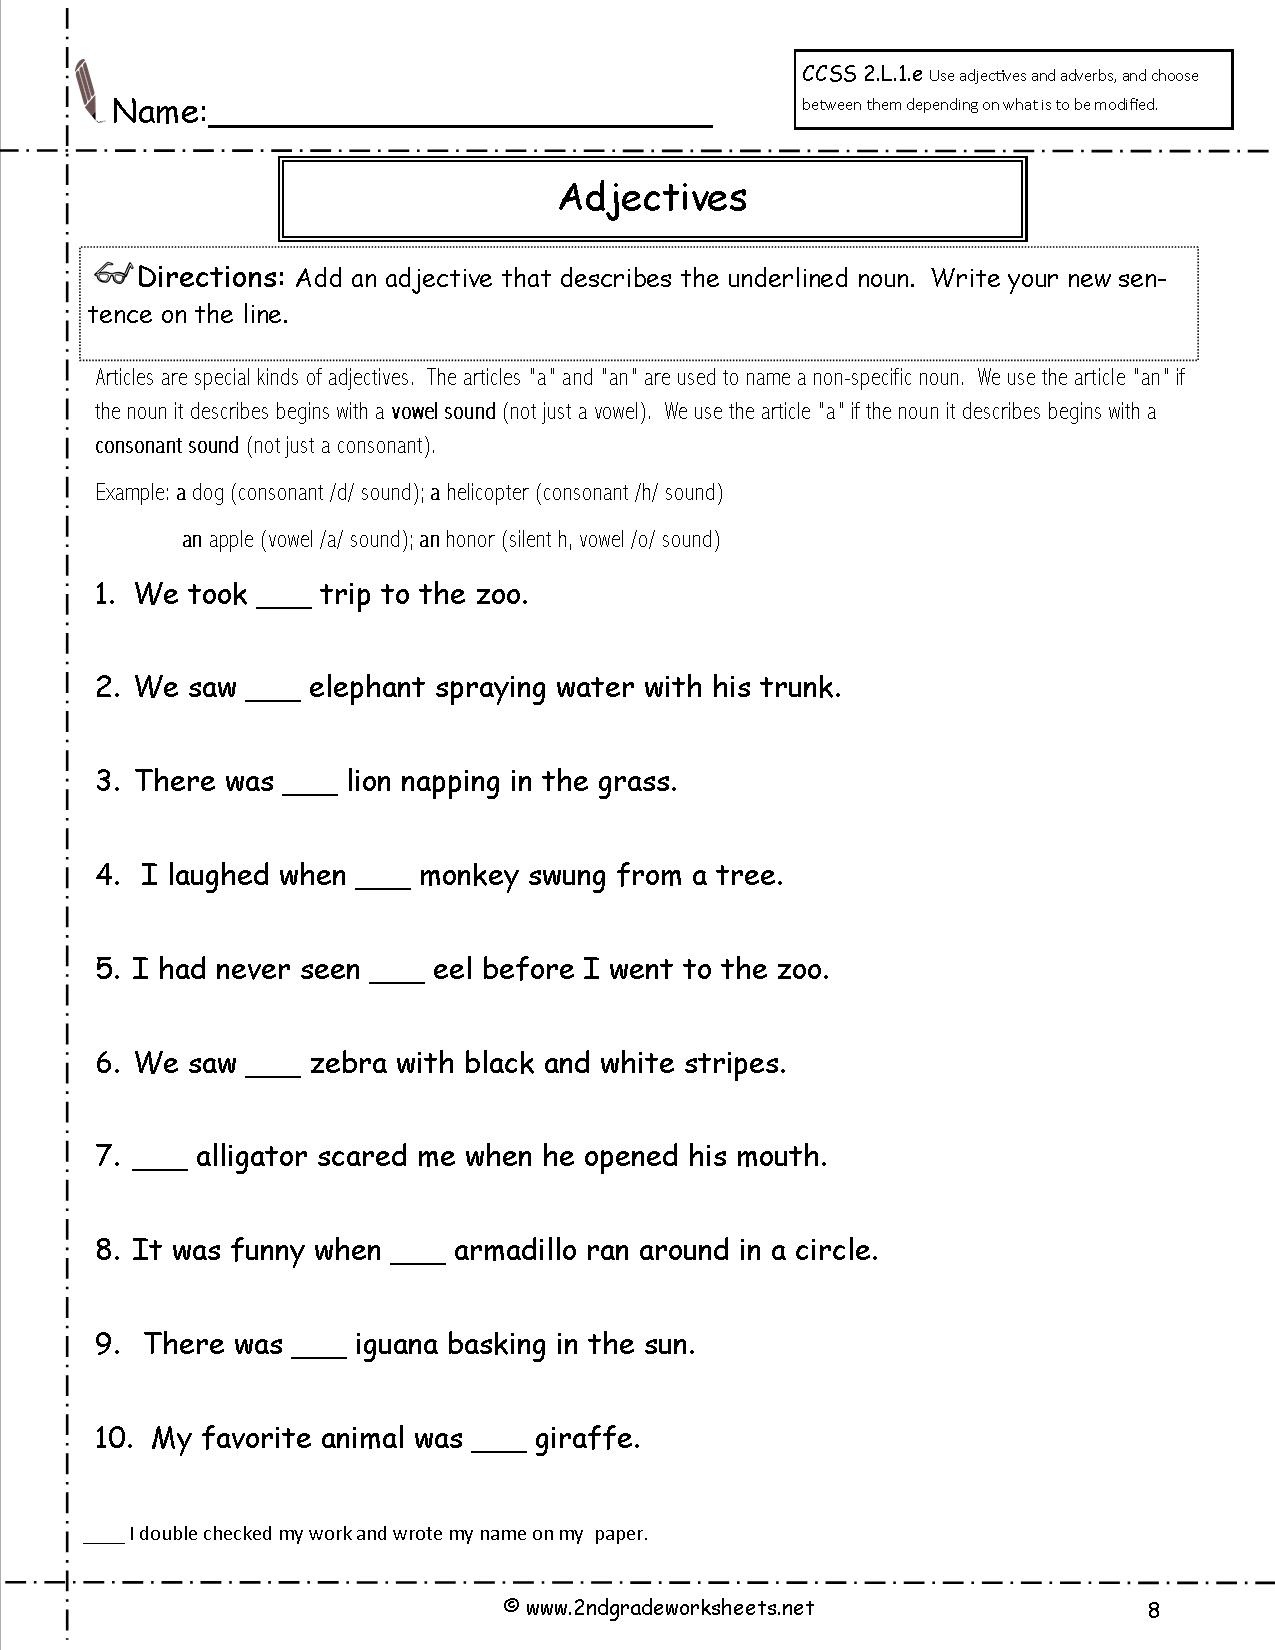 Free Printable Grammar Worksheet For Kindergarten